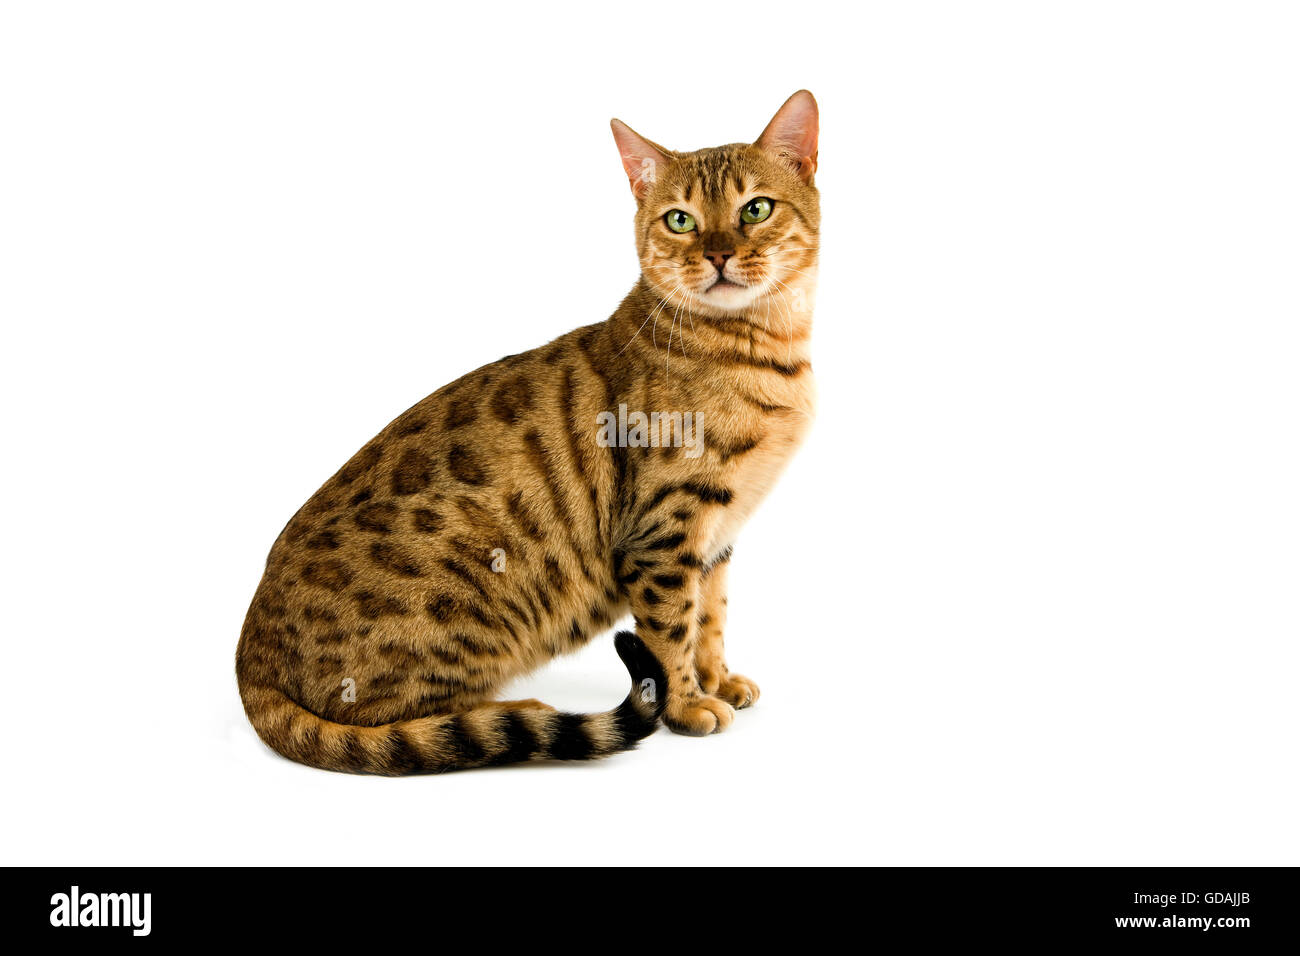 BROWN SPOTTED TABBY BENGAL DOMESTIC CAT, ADULT SITTING AGAINST ...